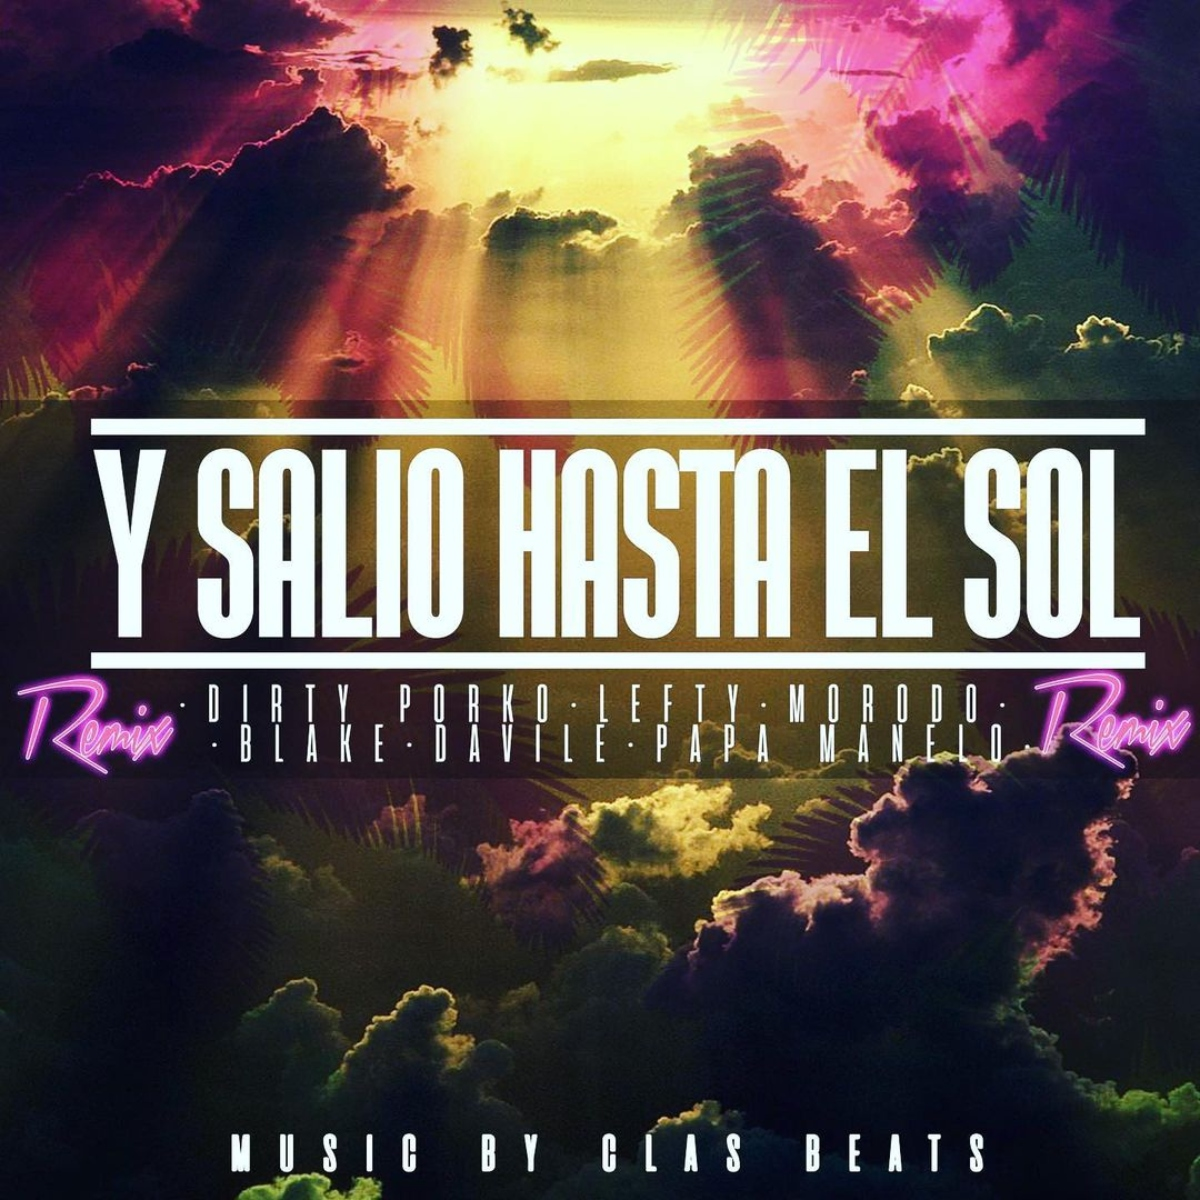 Dirty Porko remix y salio hasta el sol